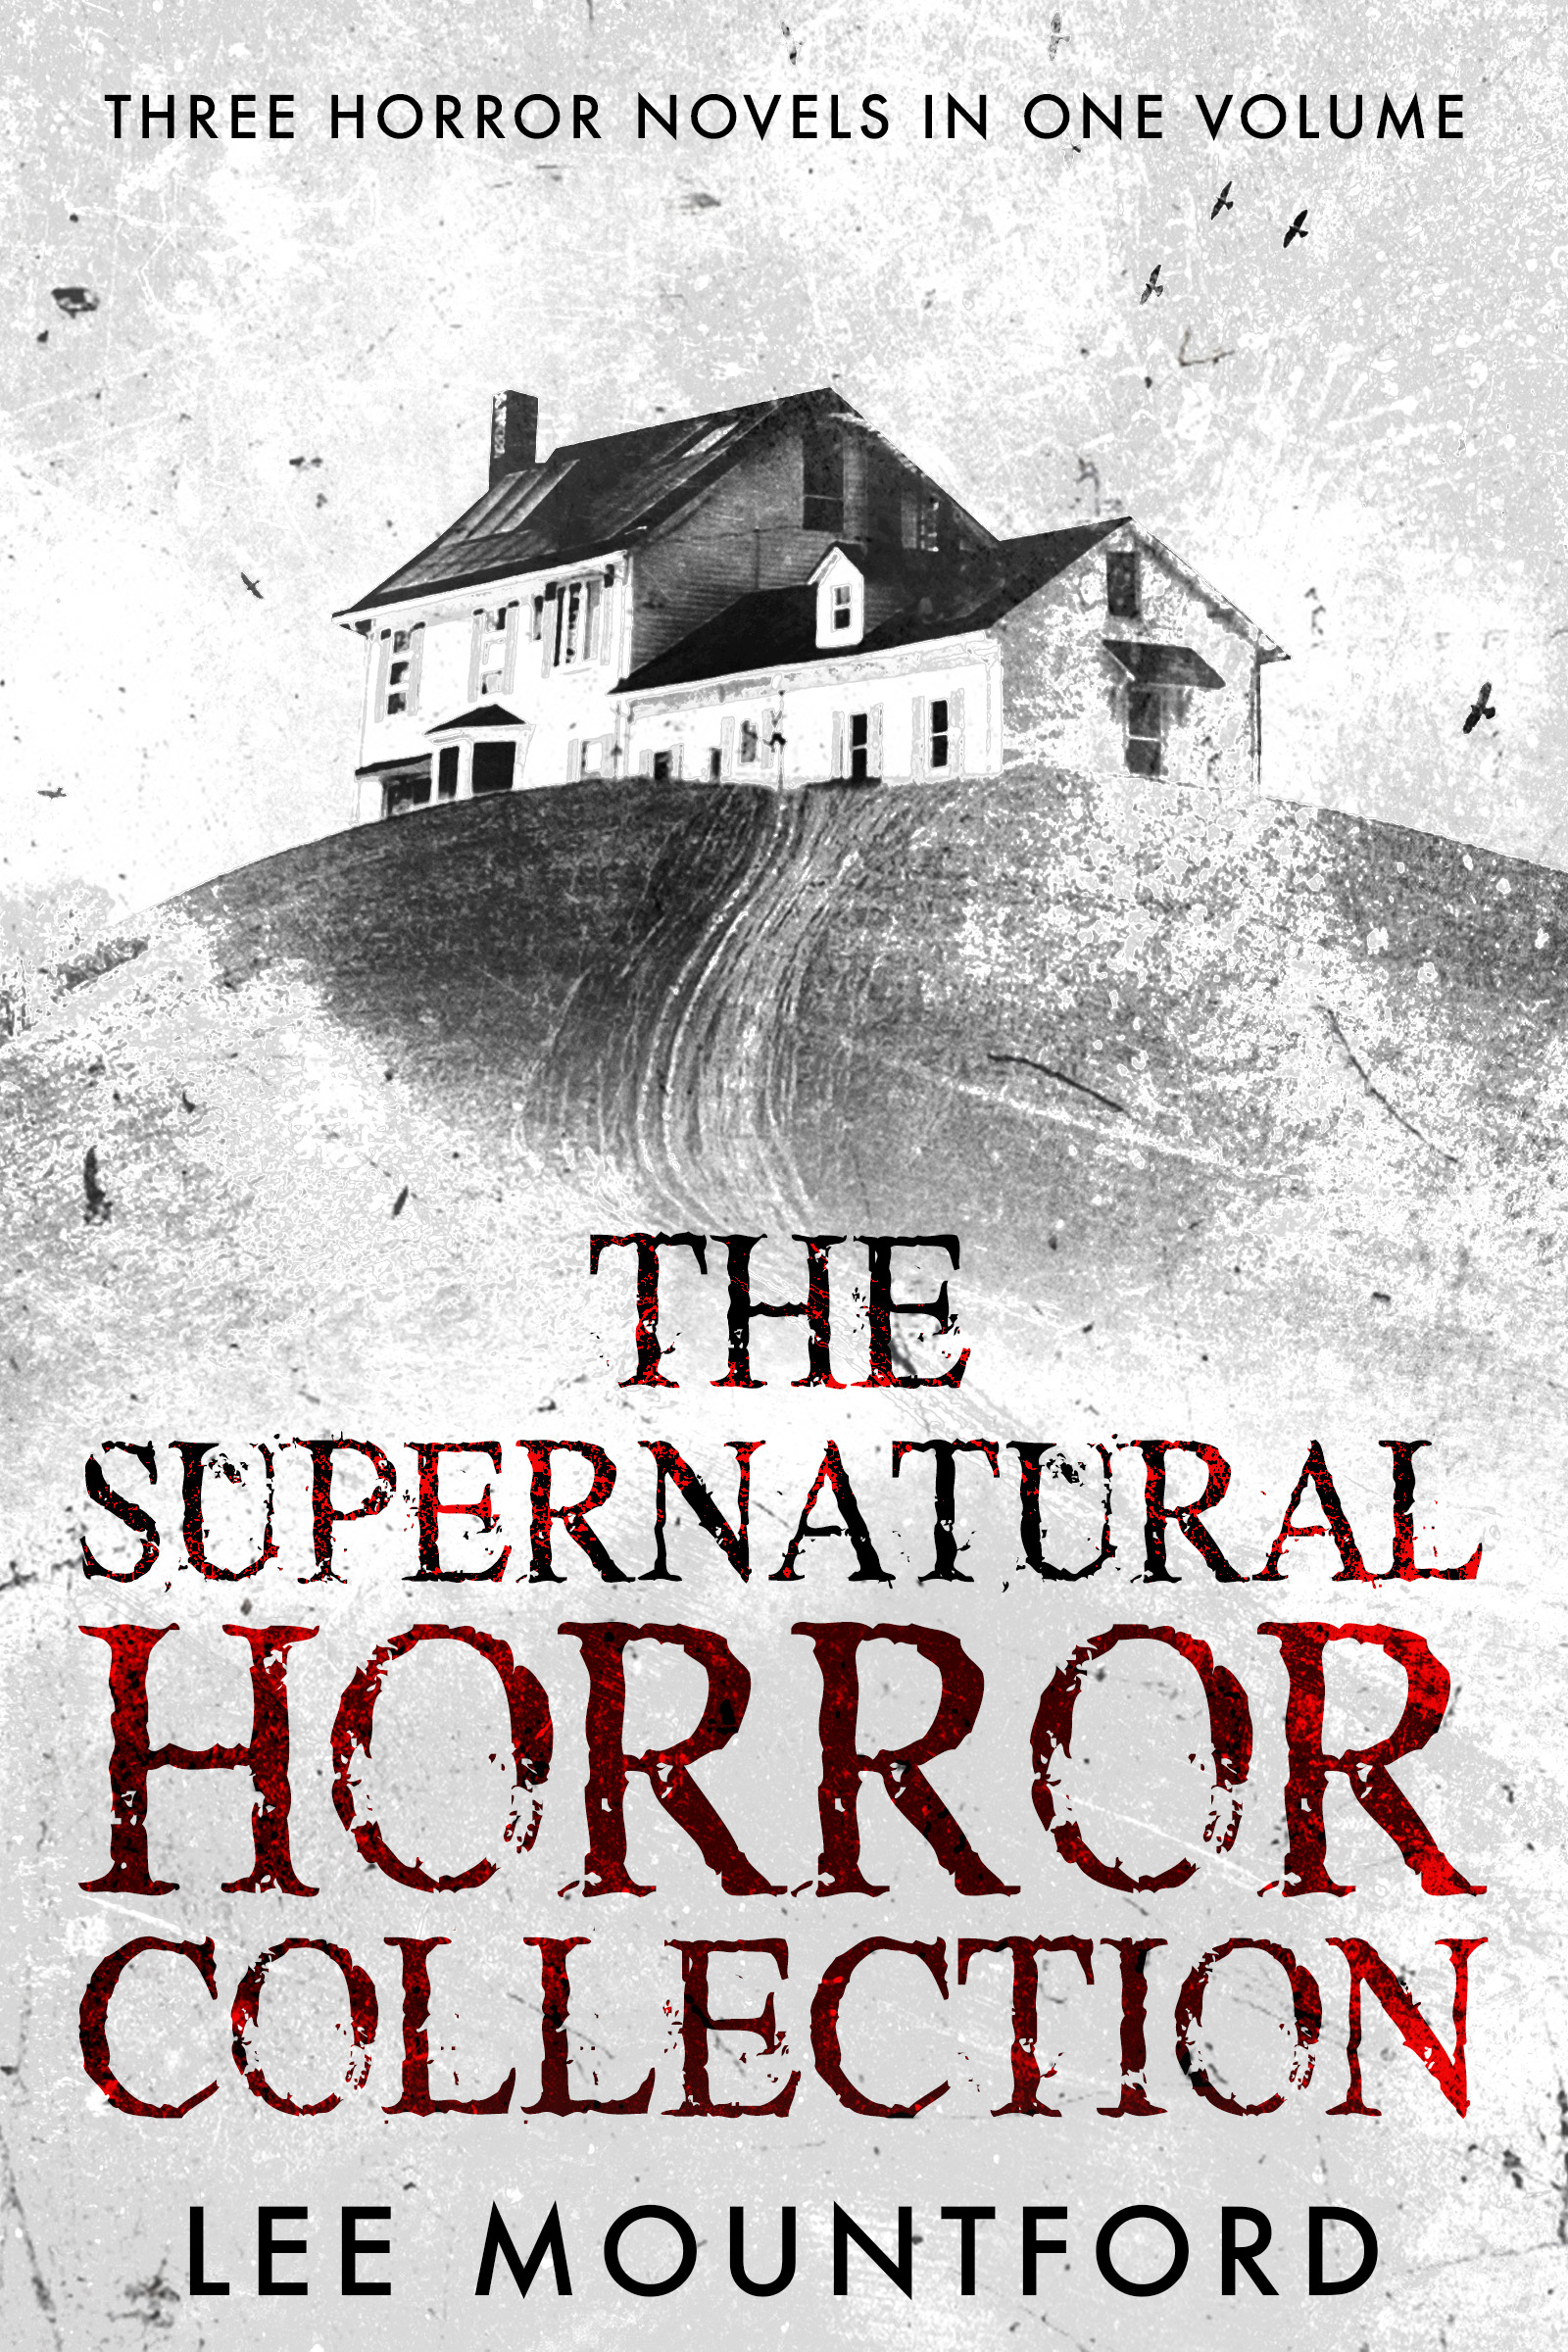 The Supernatural Horror Collection by Lee Mountford